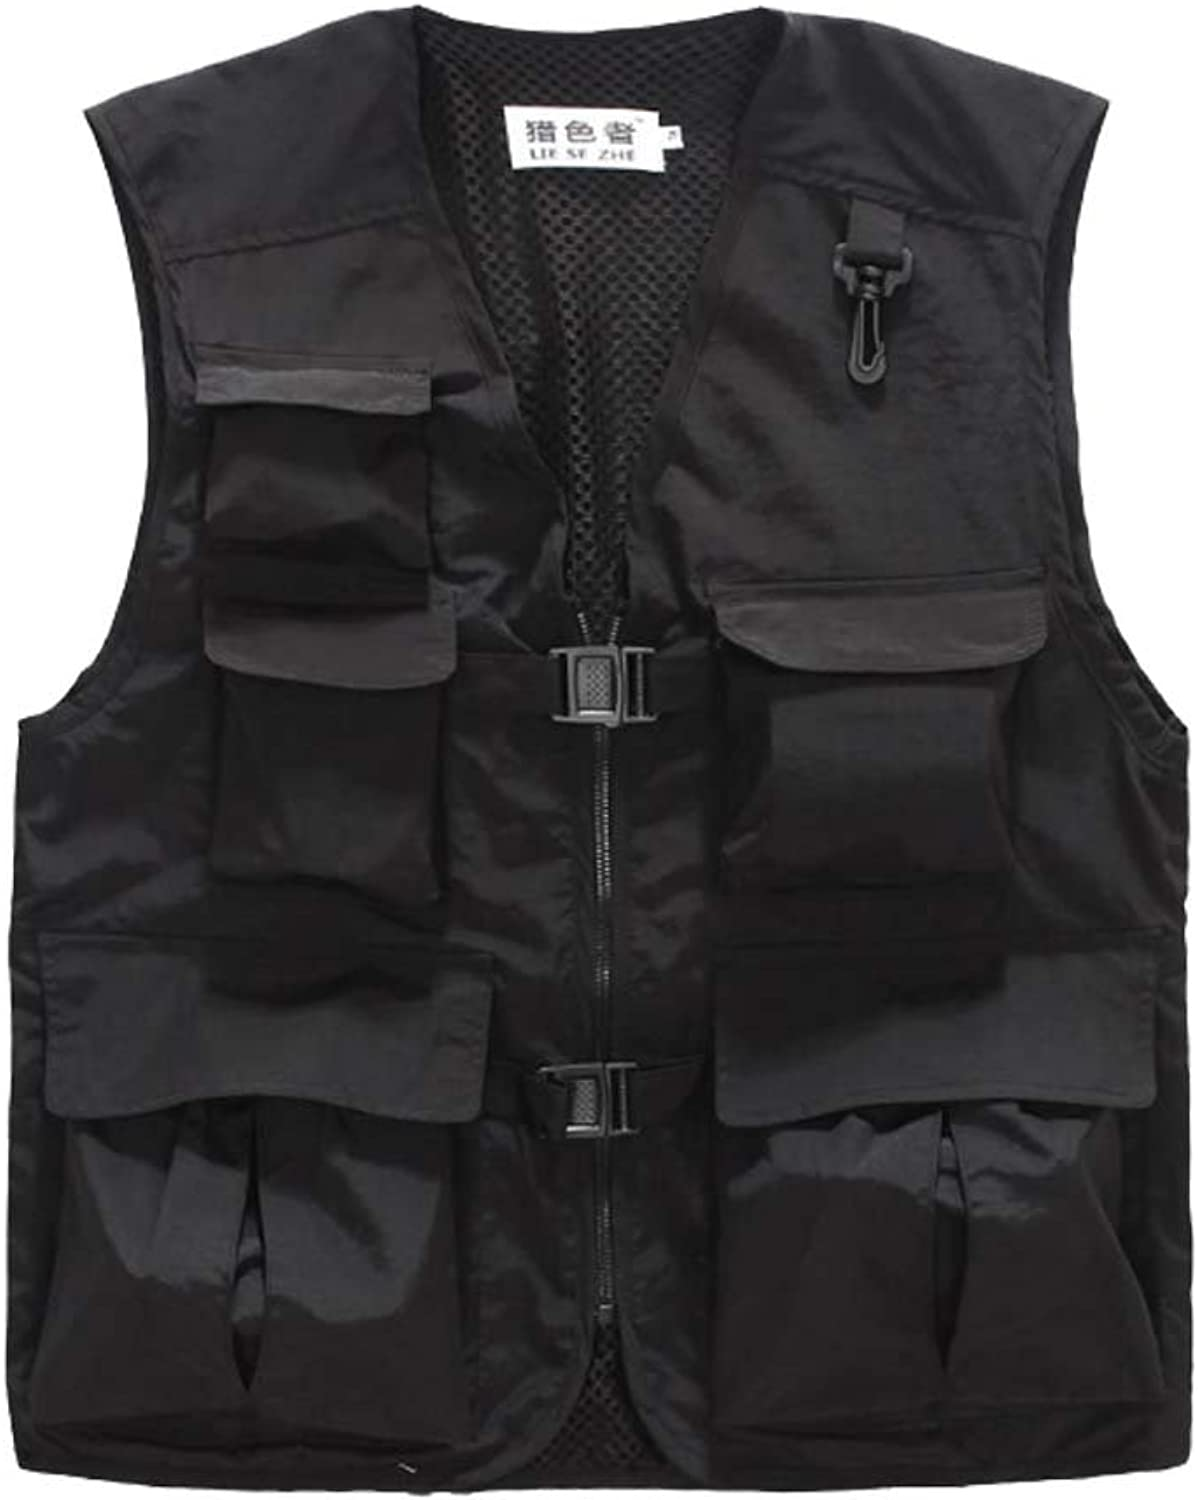 Breathable Mesh Outdoor Men Fishing Photographer Vest Waistcoat Black 3XL